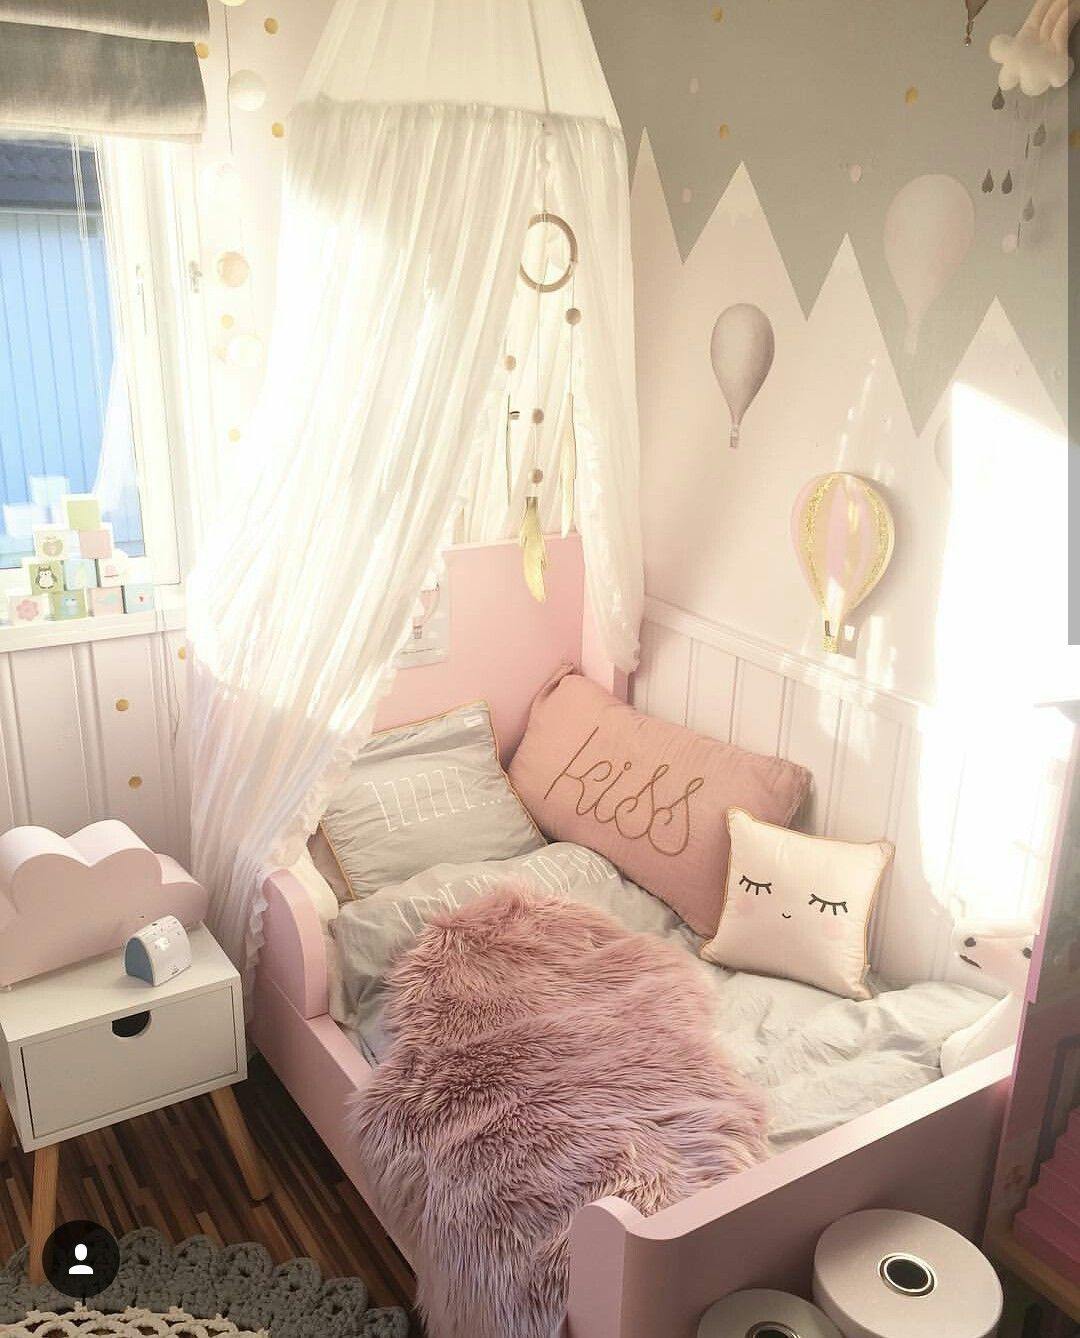 Pin by KRISTINA NIKIFOROVA on Kids | Pinterest | Room, Bedrooms and ...